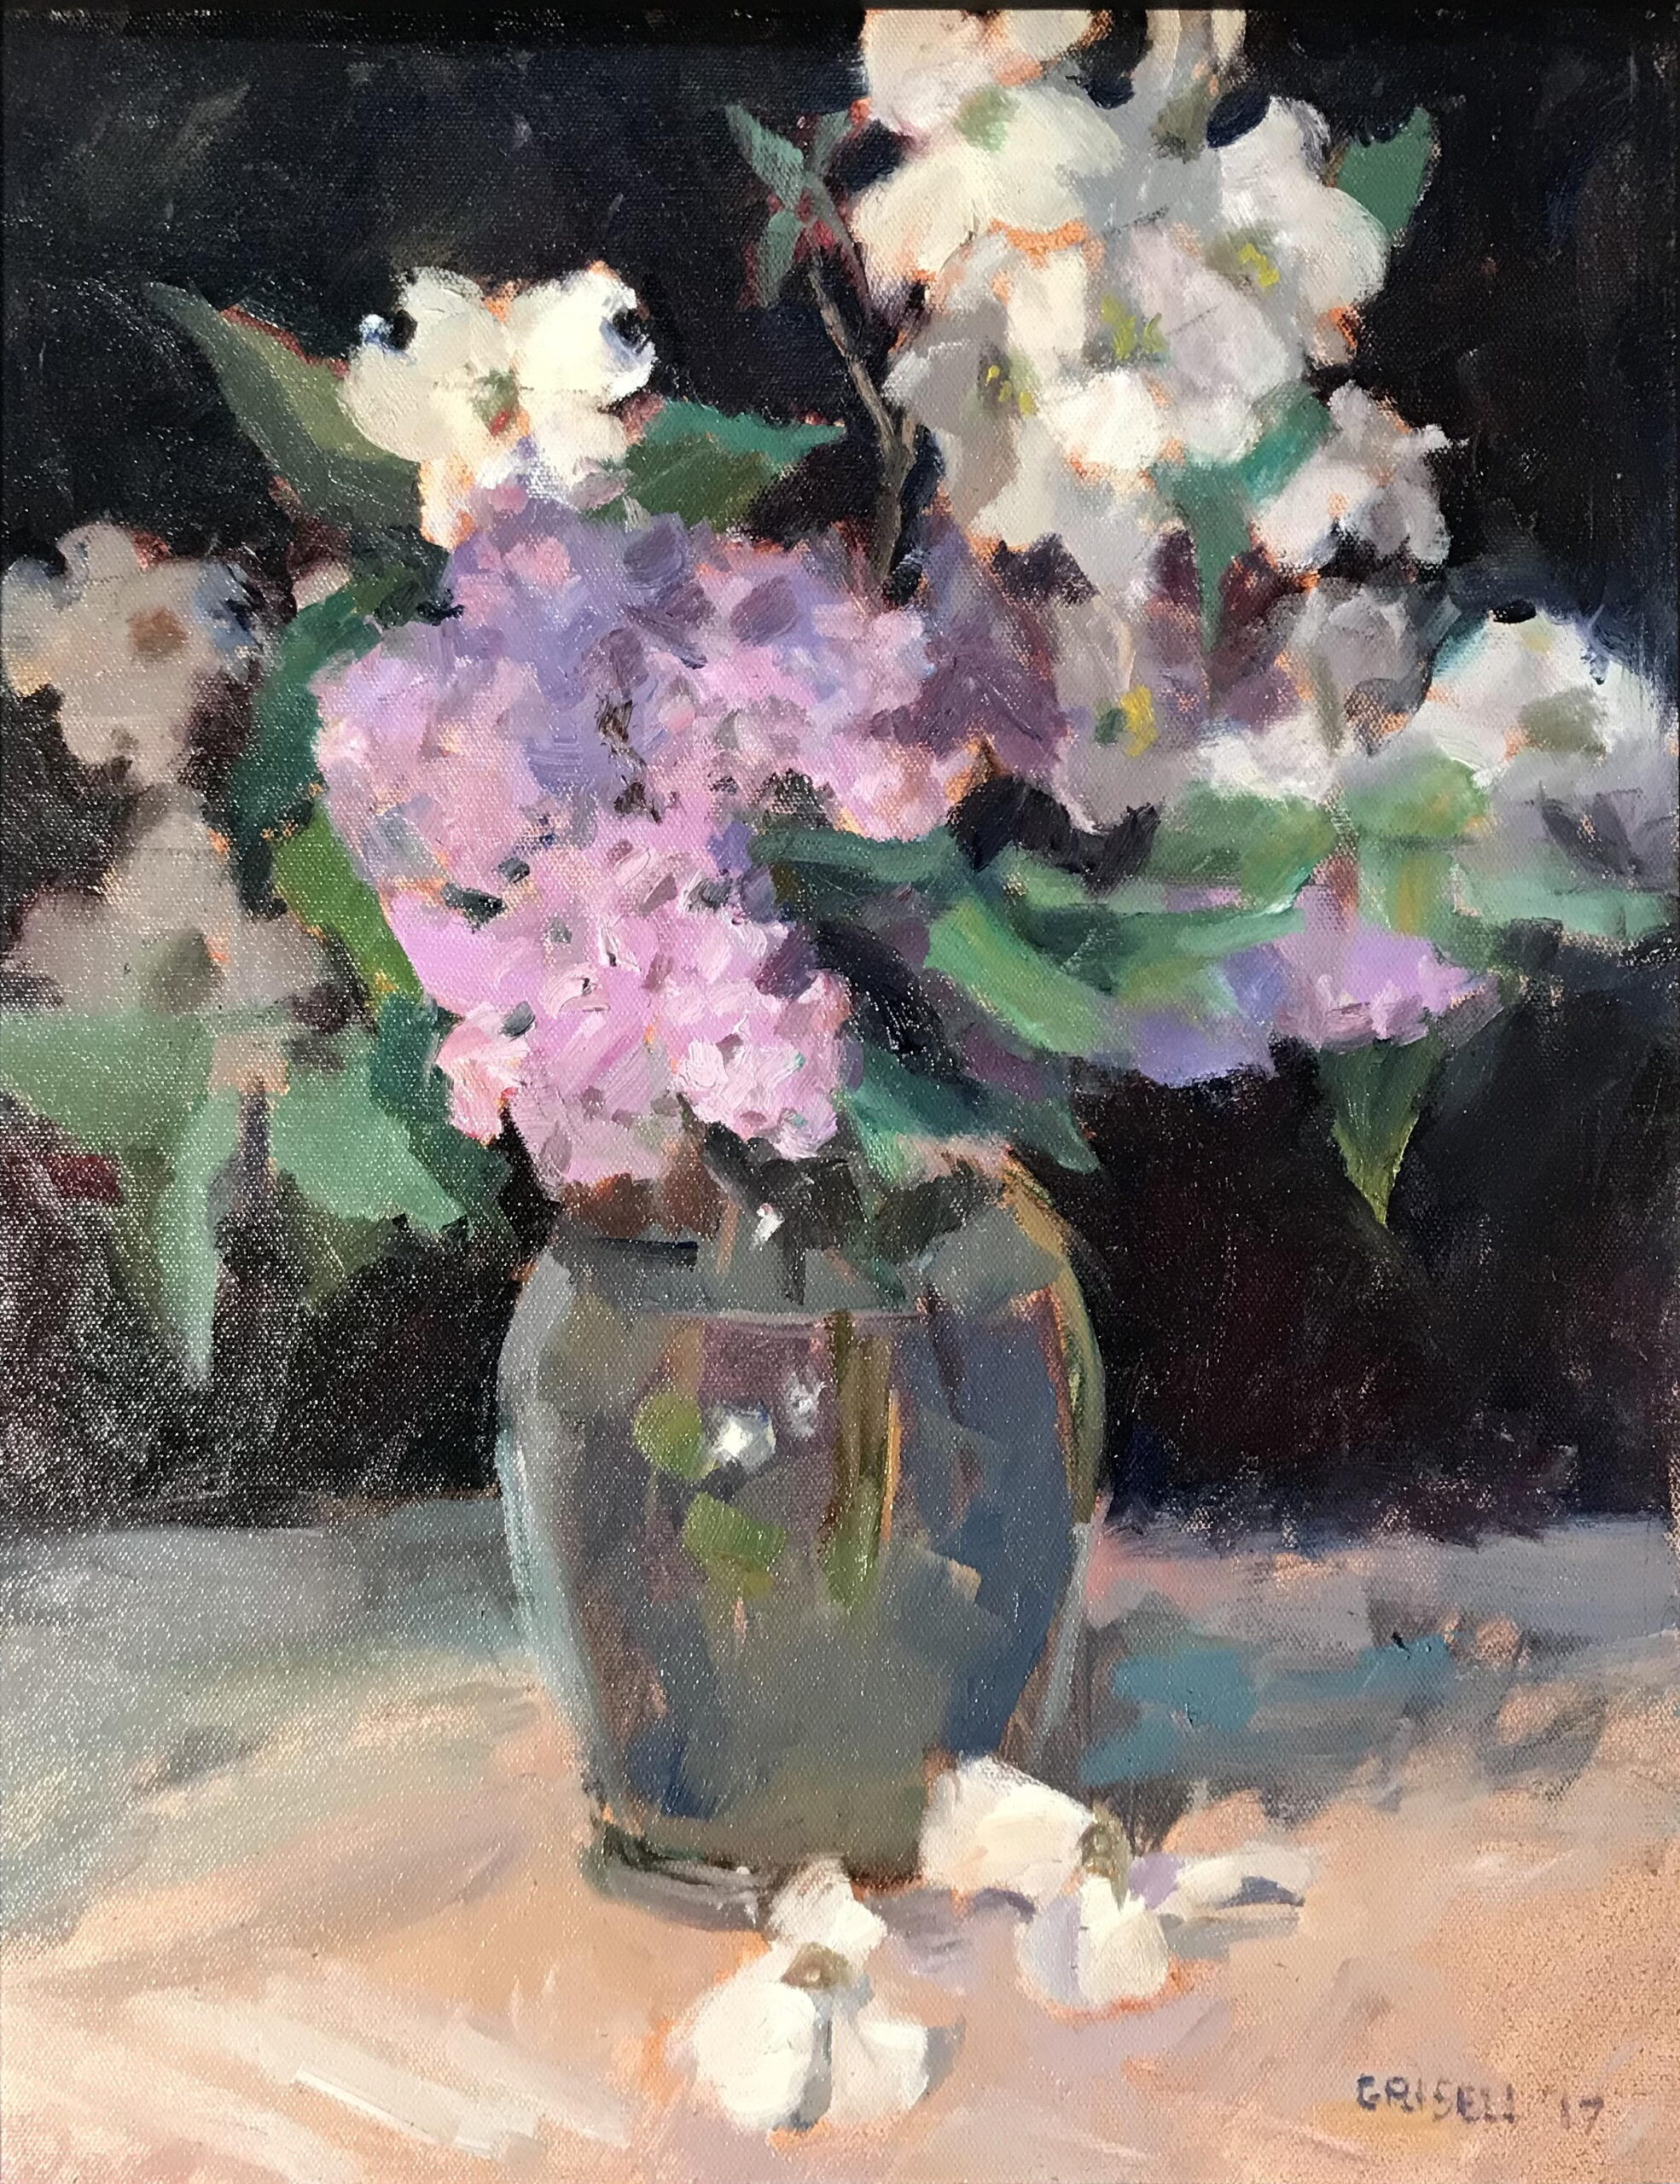 Dogwood and Lilacs, Oil on Canvas, 20 x 16 Inches, by Susan Grisell, $550